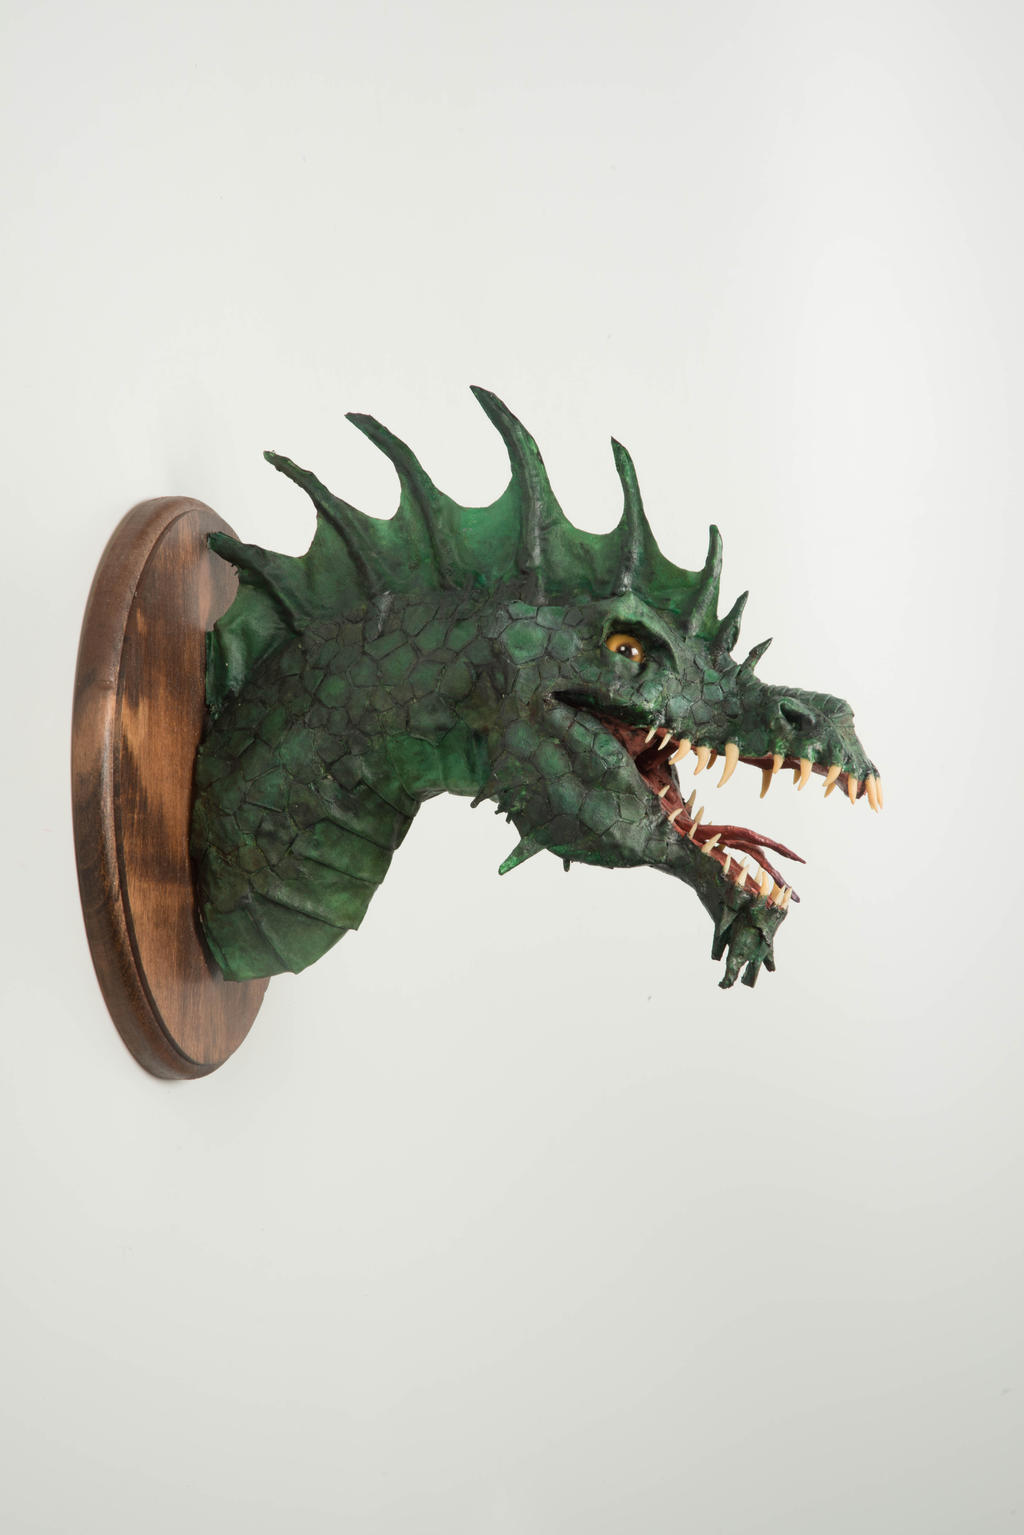 Instructions for making a mask apps directories - How To Make Paper Mache Dragon Apps Directories